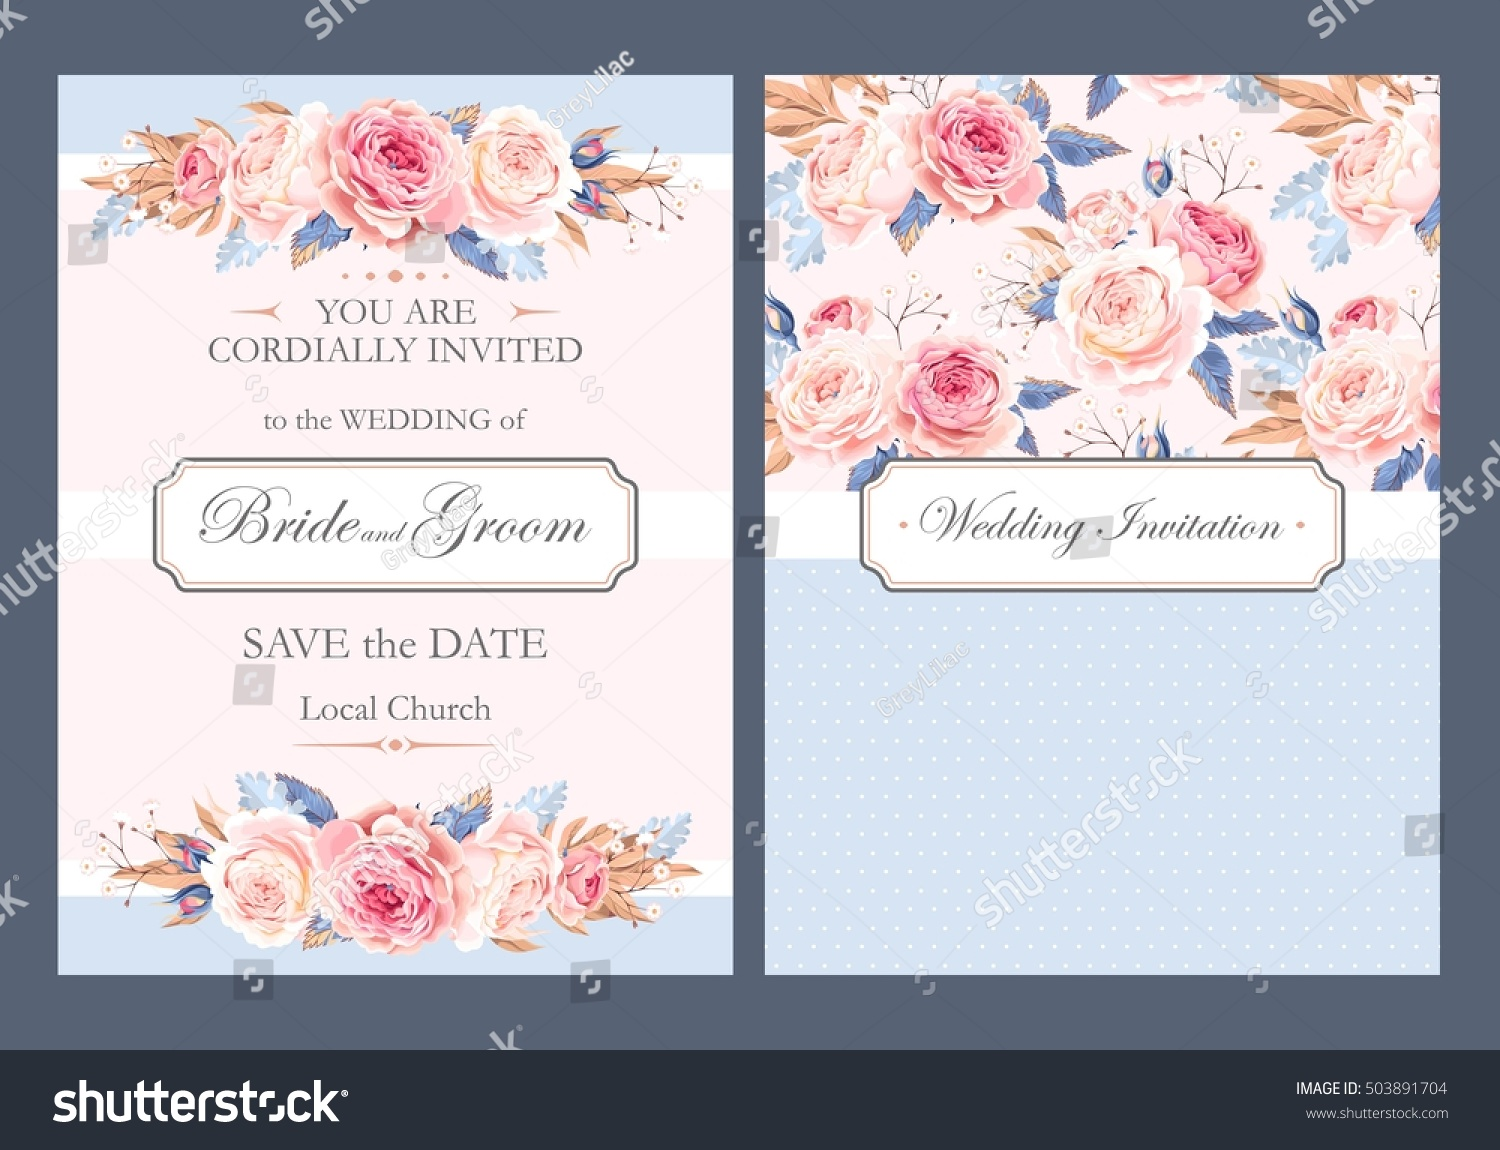 Ide invitation free open house new home weve moved or any occasion vintage wedding invitation with ide invitation stopboris Images